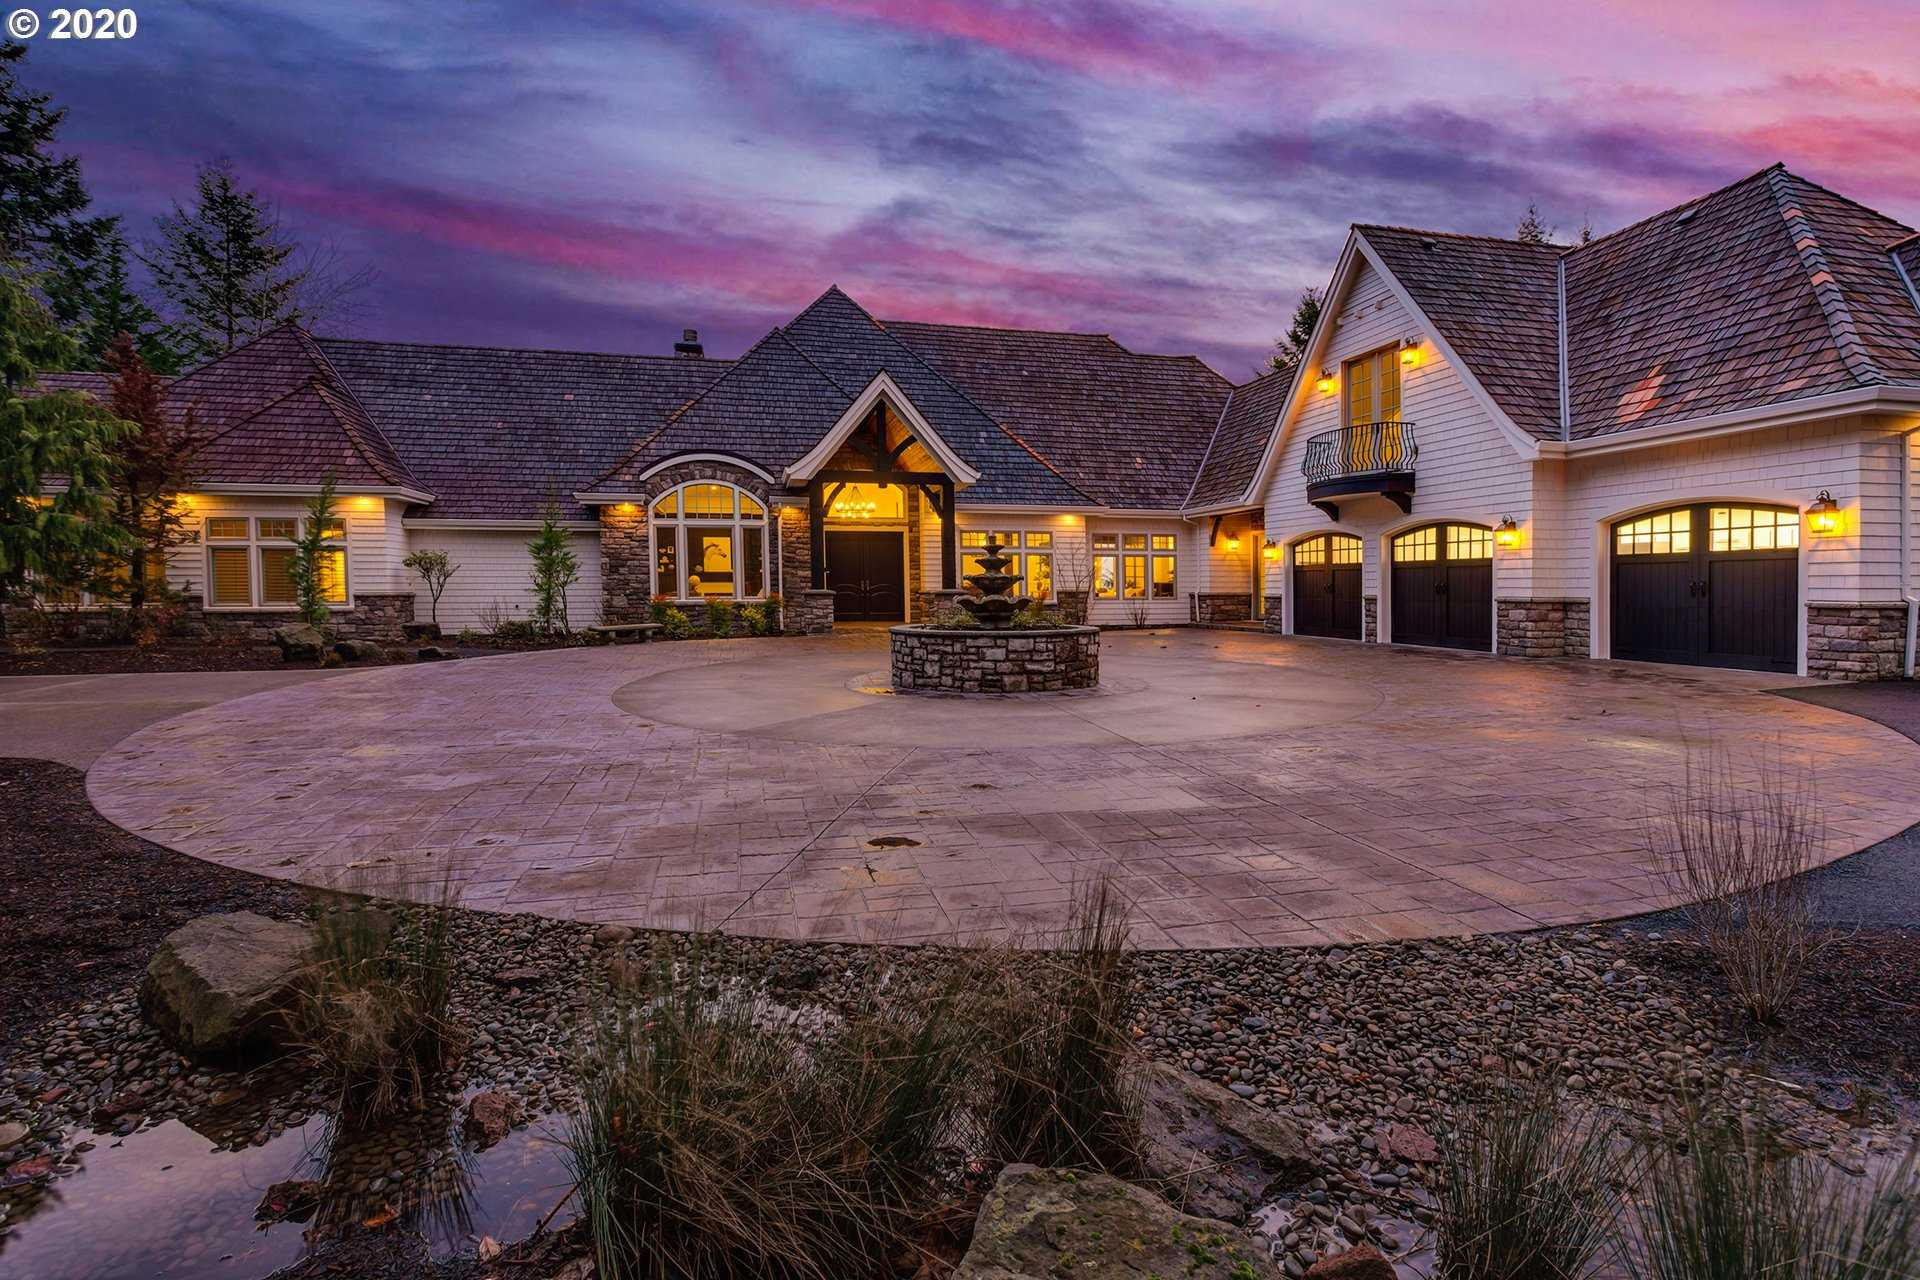 $2,450,000 - 4Br/5Ba -  for Sale in Quarry At Stafford, Wilsonville